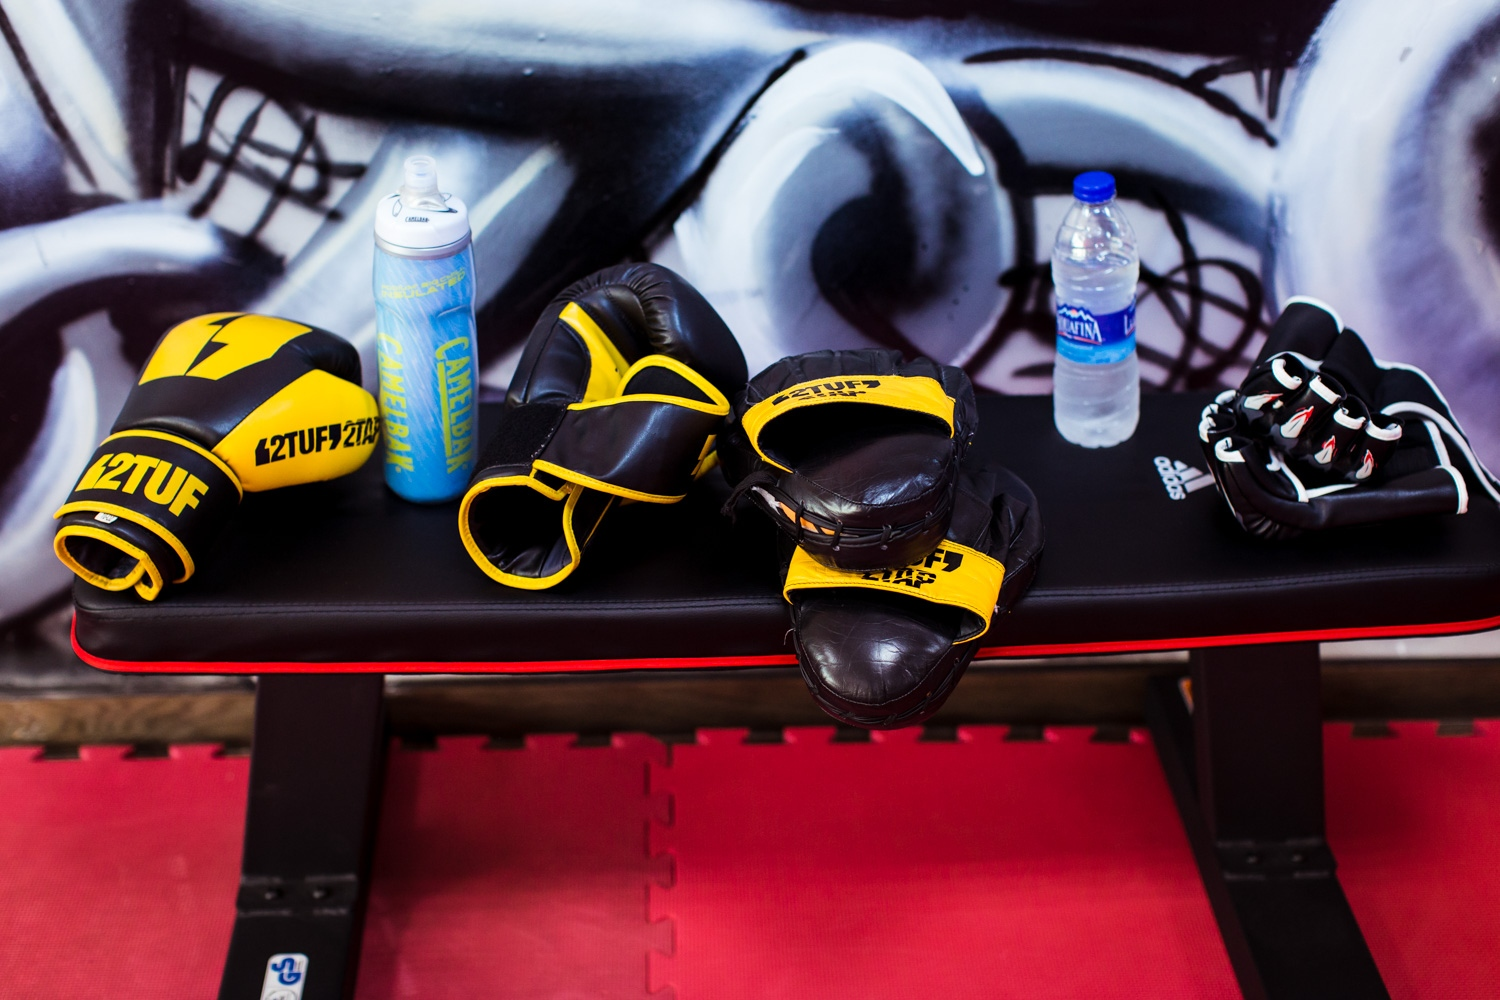 Gloves and other training equipment are seen in a training room at She Fighter in Amman, Jordan, on August 21, 2015.